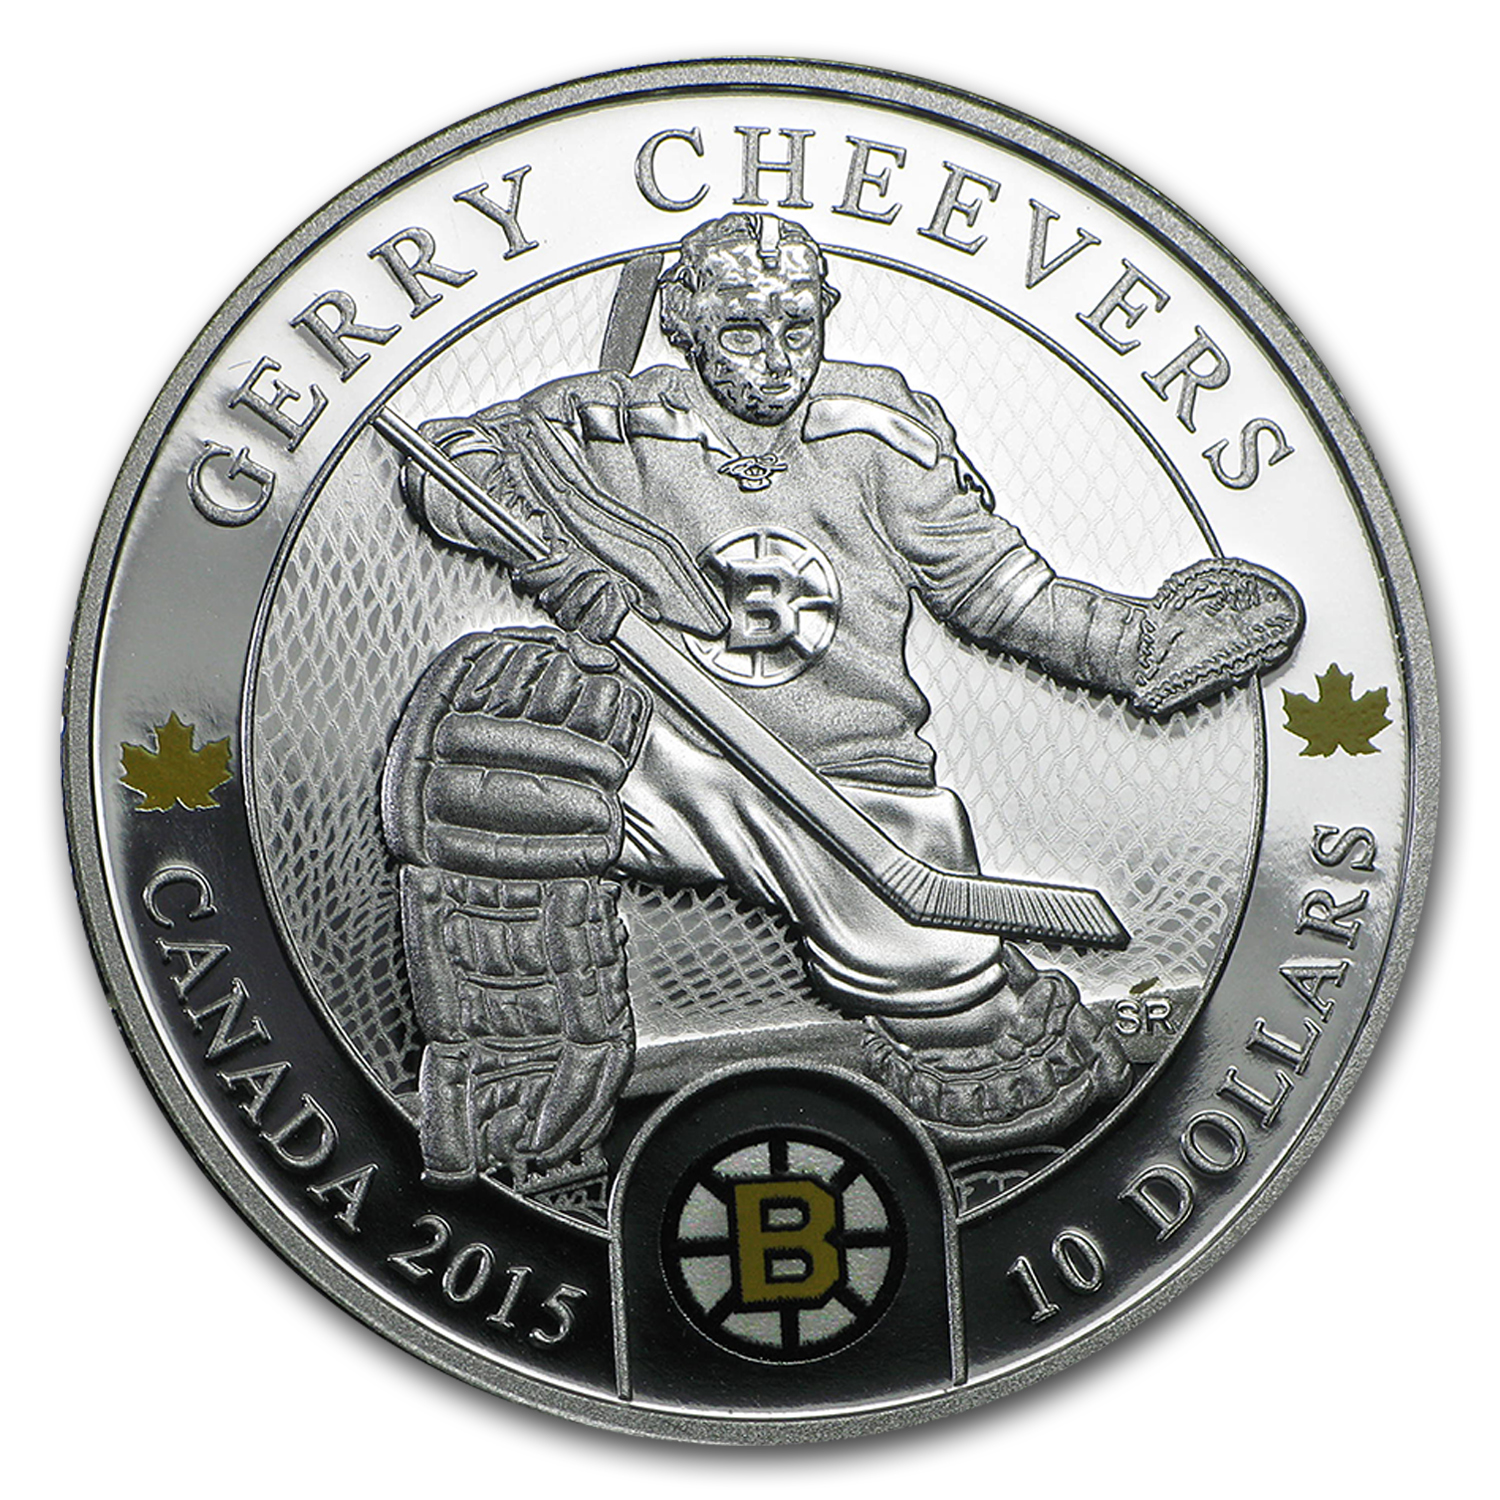 2015 Canada 1/2 oz Silver $10 NHL Goalies: Gerry Cheevers